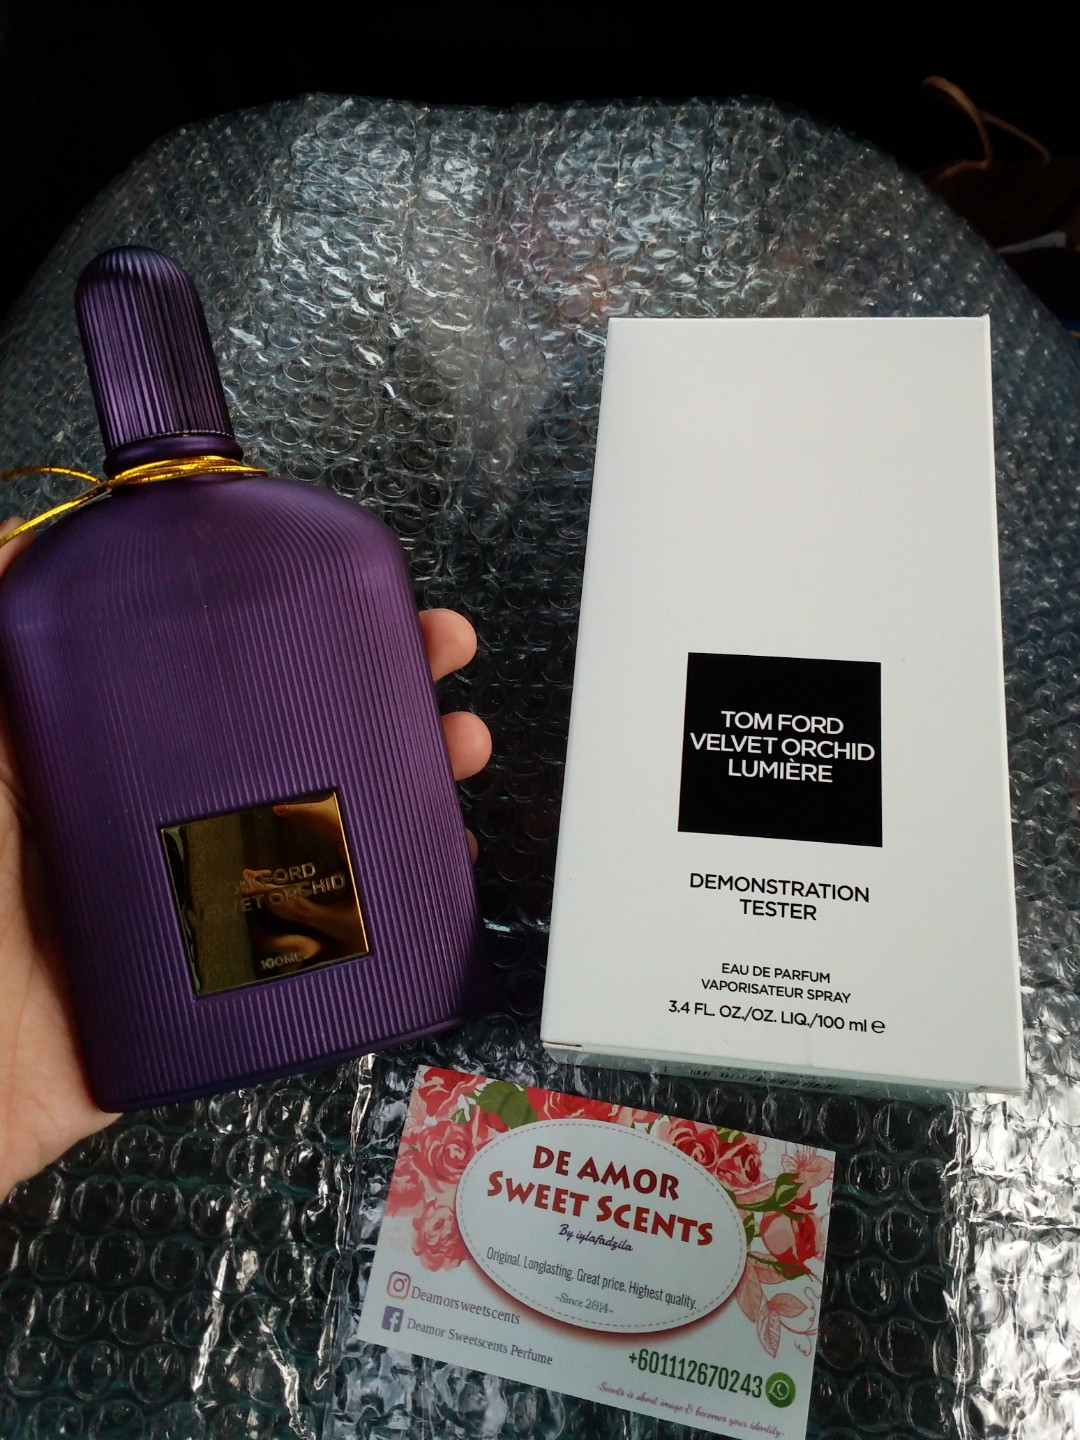 05a3b6e1df79b Tomford velvet orchid lumiere Tester, Health & Beauty, Perfumes, Nail Care,  & Others on Carousell